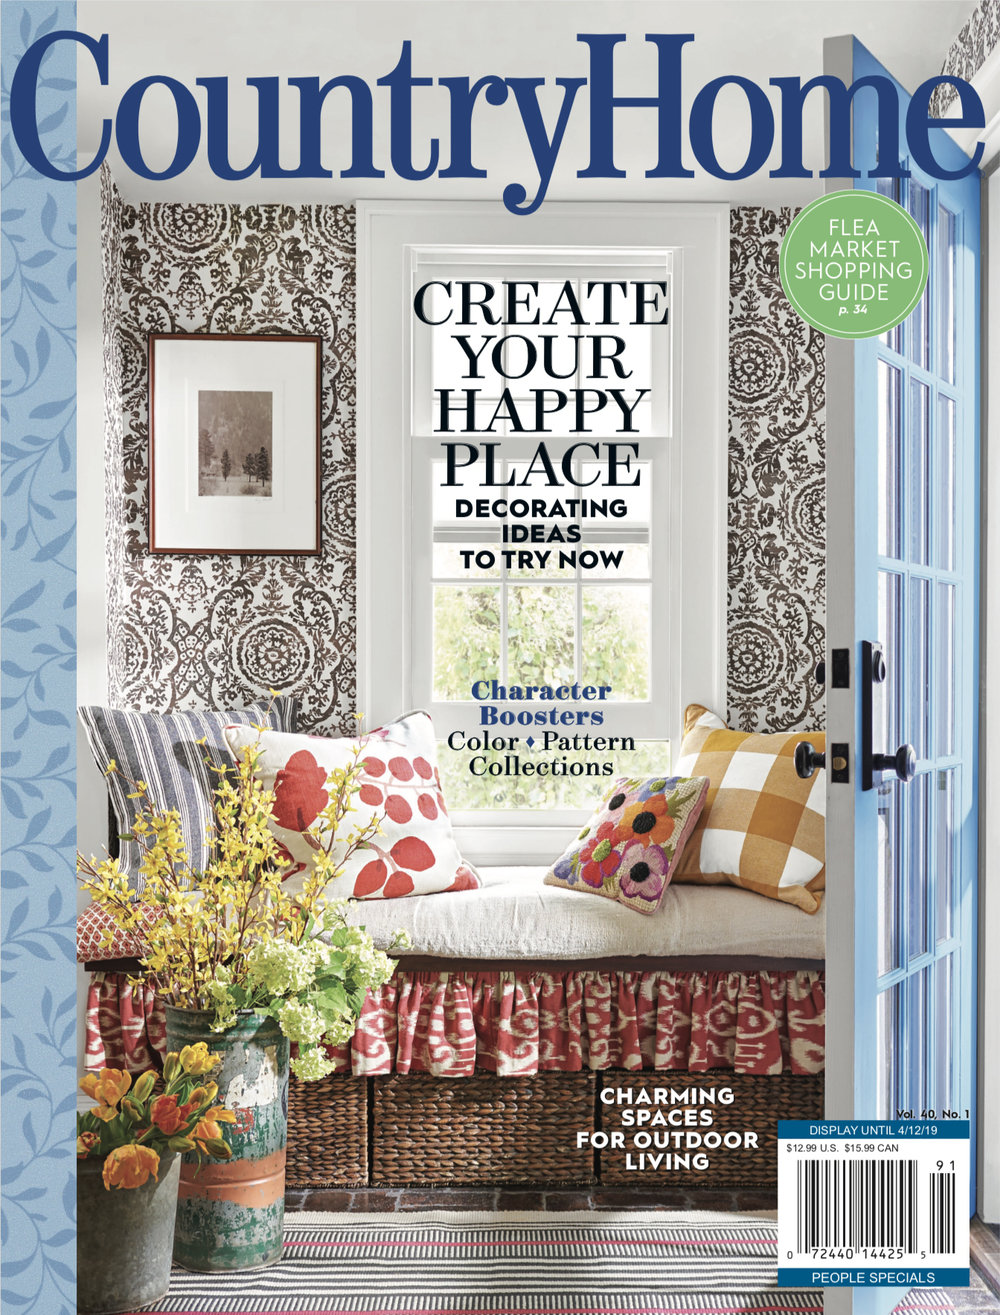 Country+Home+Magazine+Early+Spring+2019 copy.jpg